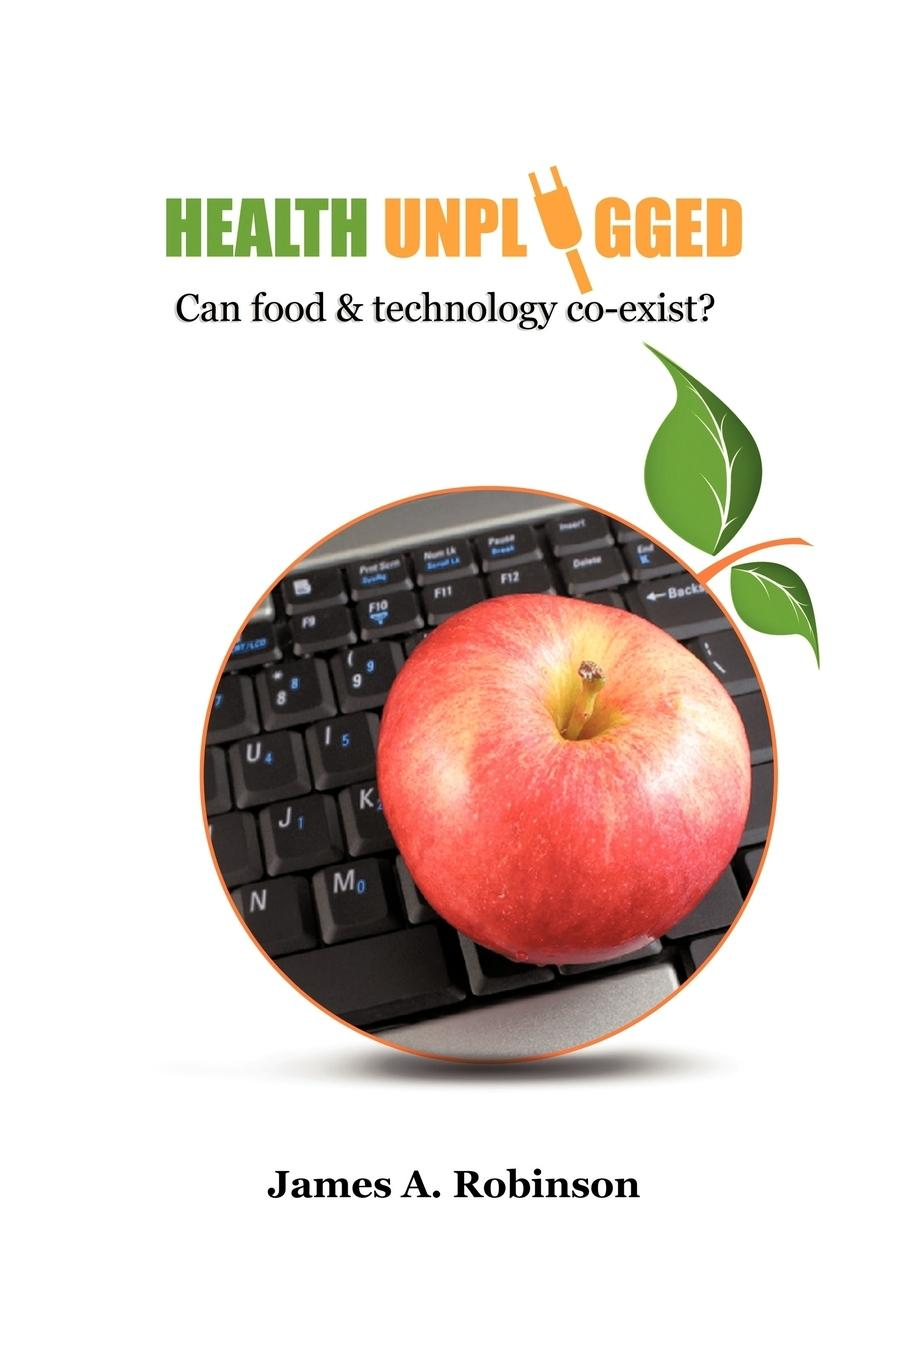 Health Unplugged  Can food & technology co-exist ?  James A. Robinson  Taschenbuch  Paperback  Englisch  2010 - Robinson, James A.